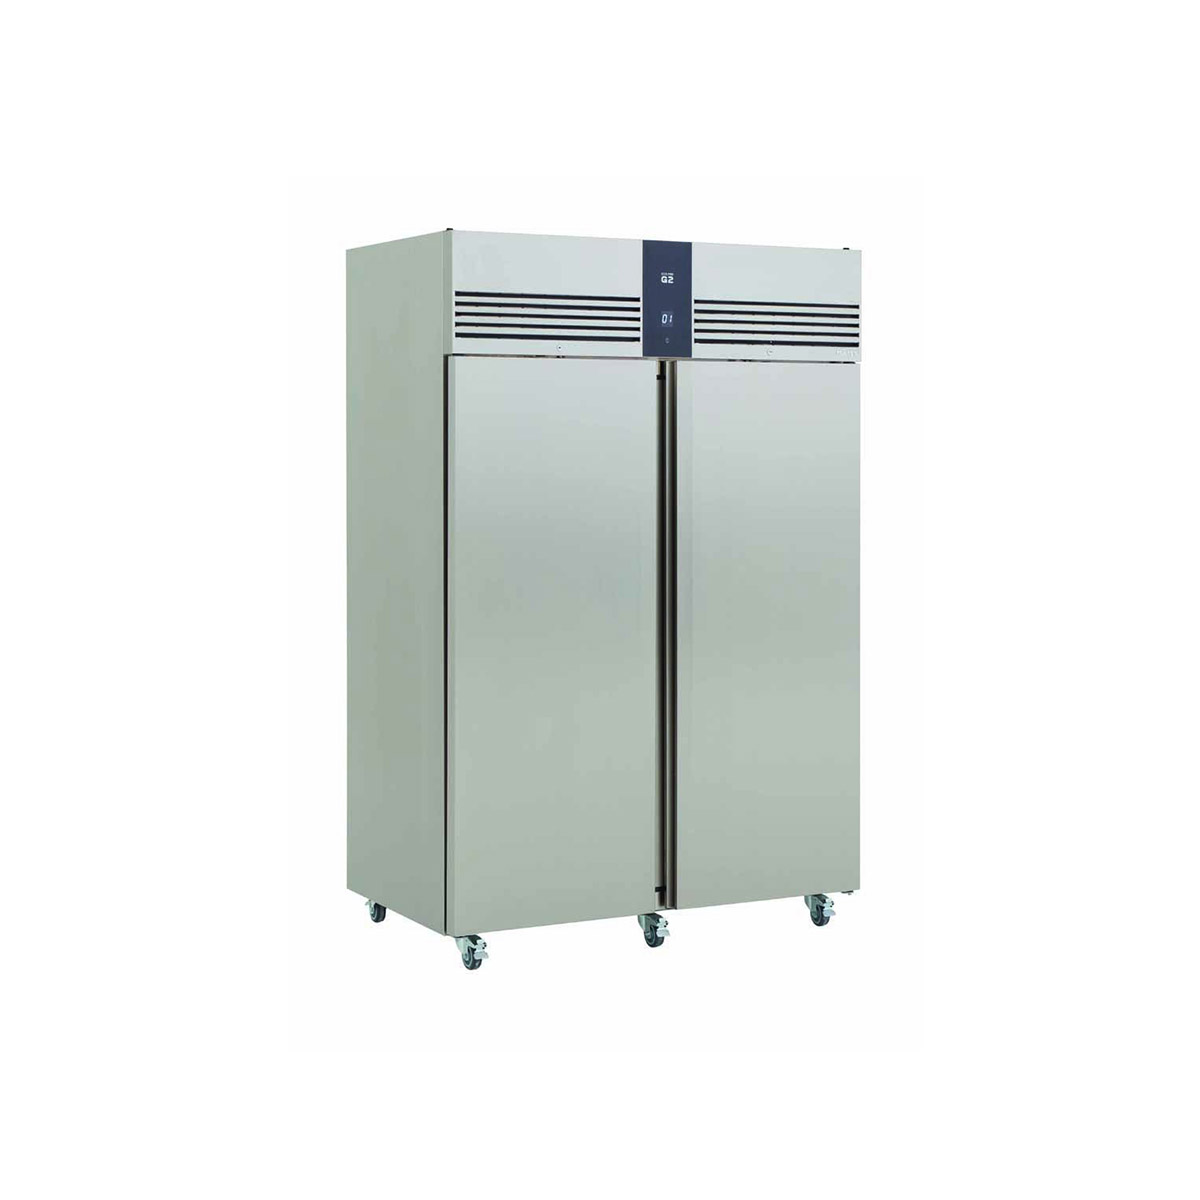 Foster EcoPro G2 EP1440L (10-170) 1350 Ltr Stainless Steel Upright Freezer